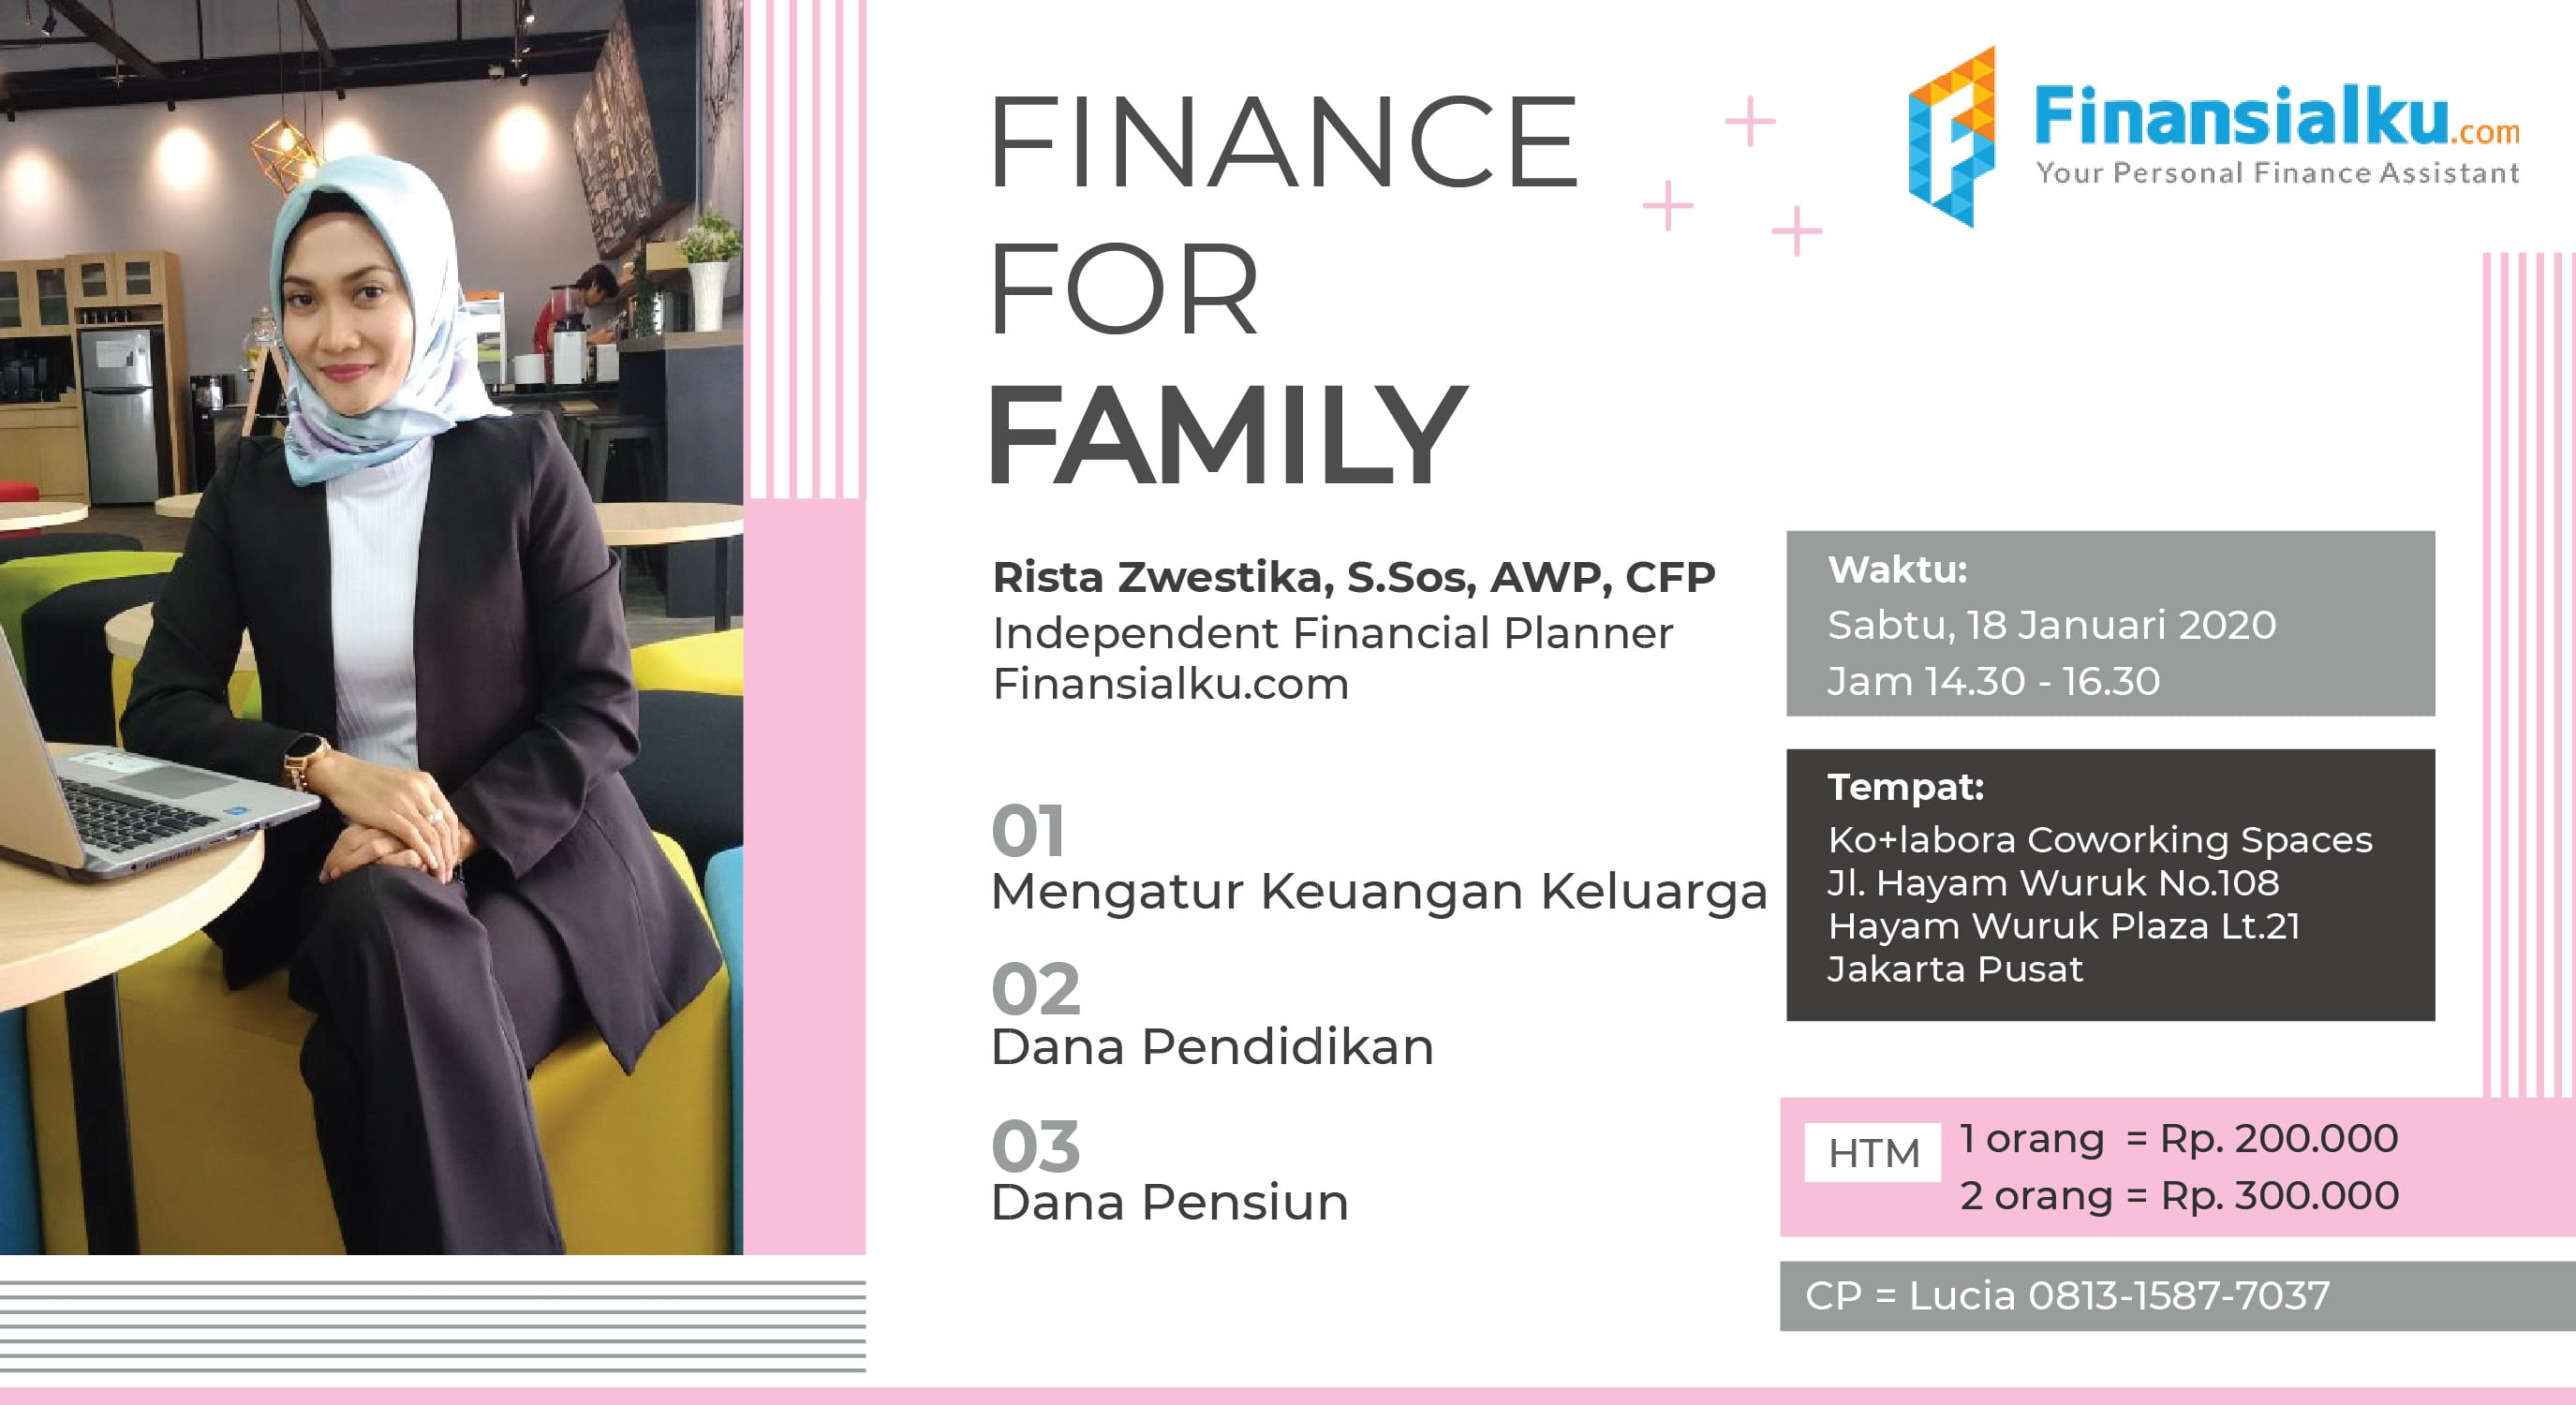 Finance For Family Januari 2020